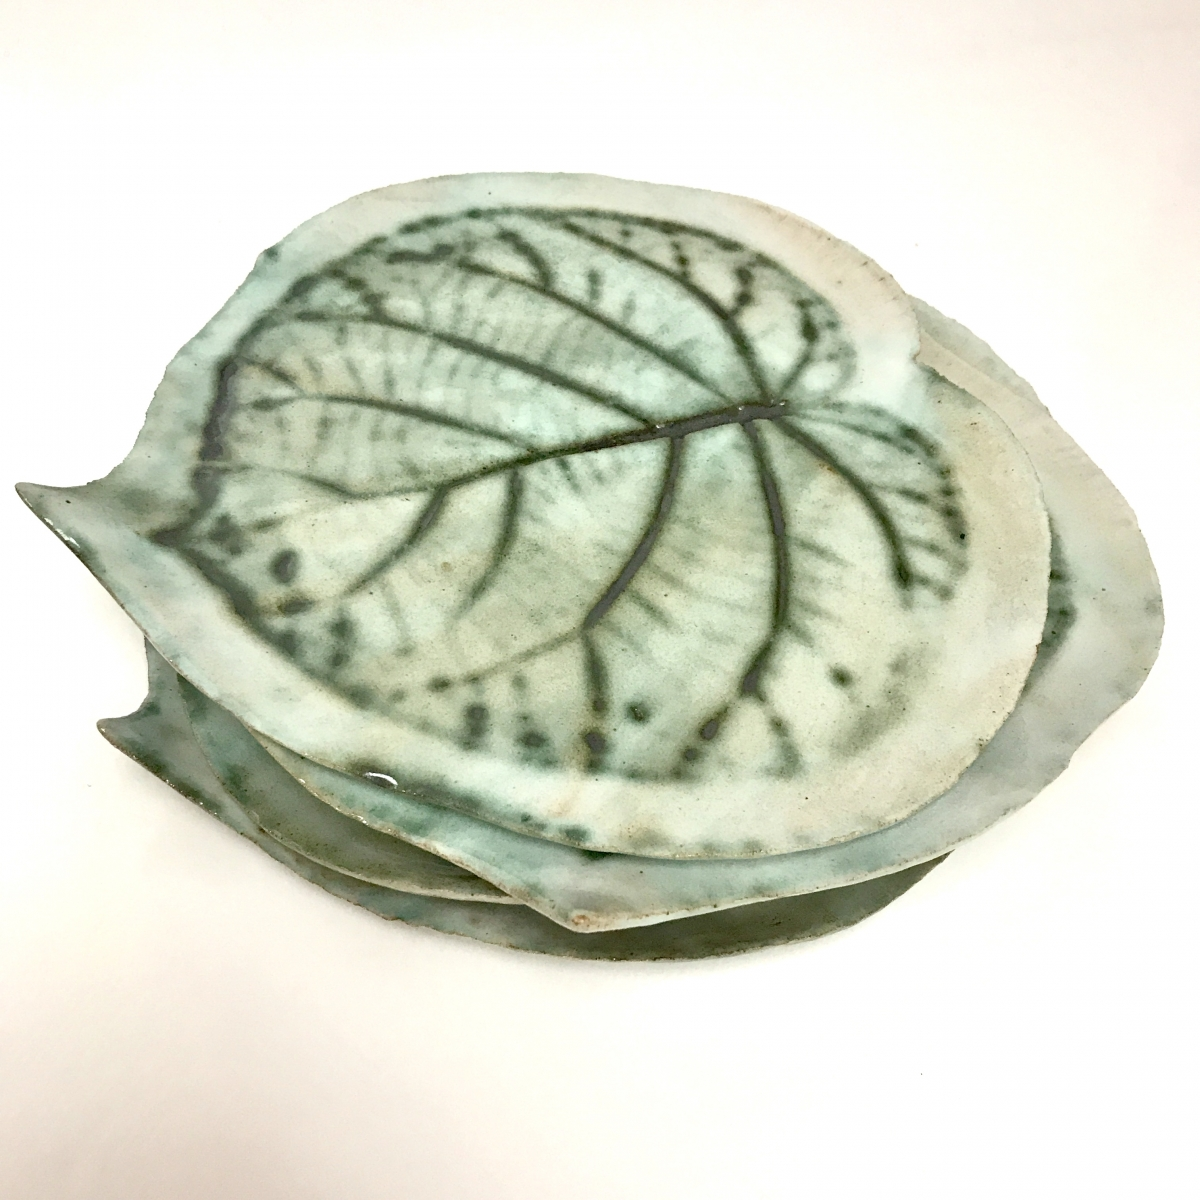 Kiwi Leaf Side Plate Stack by Sonya Ceramic Art